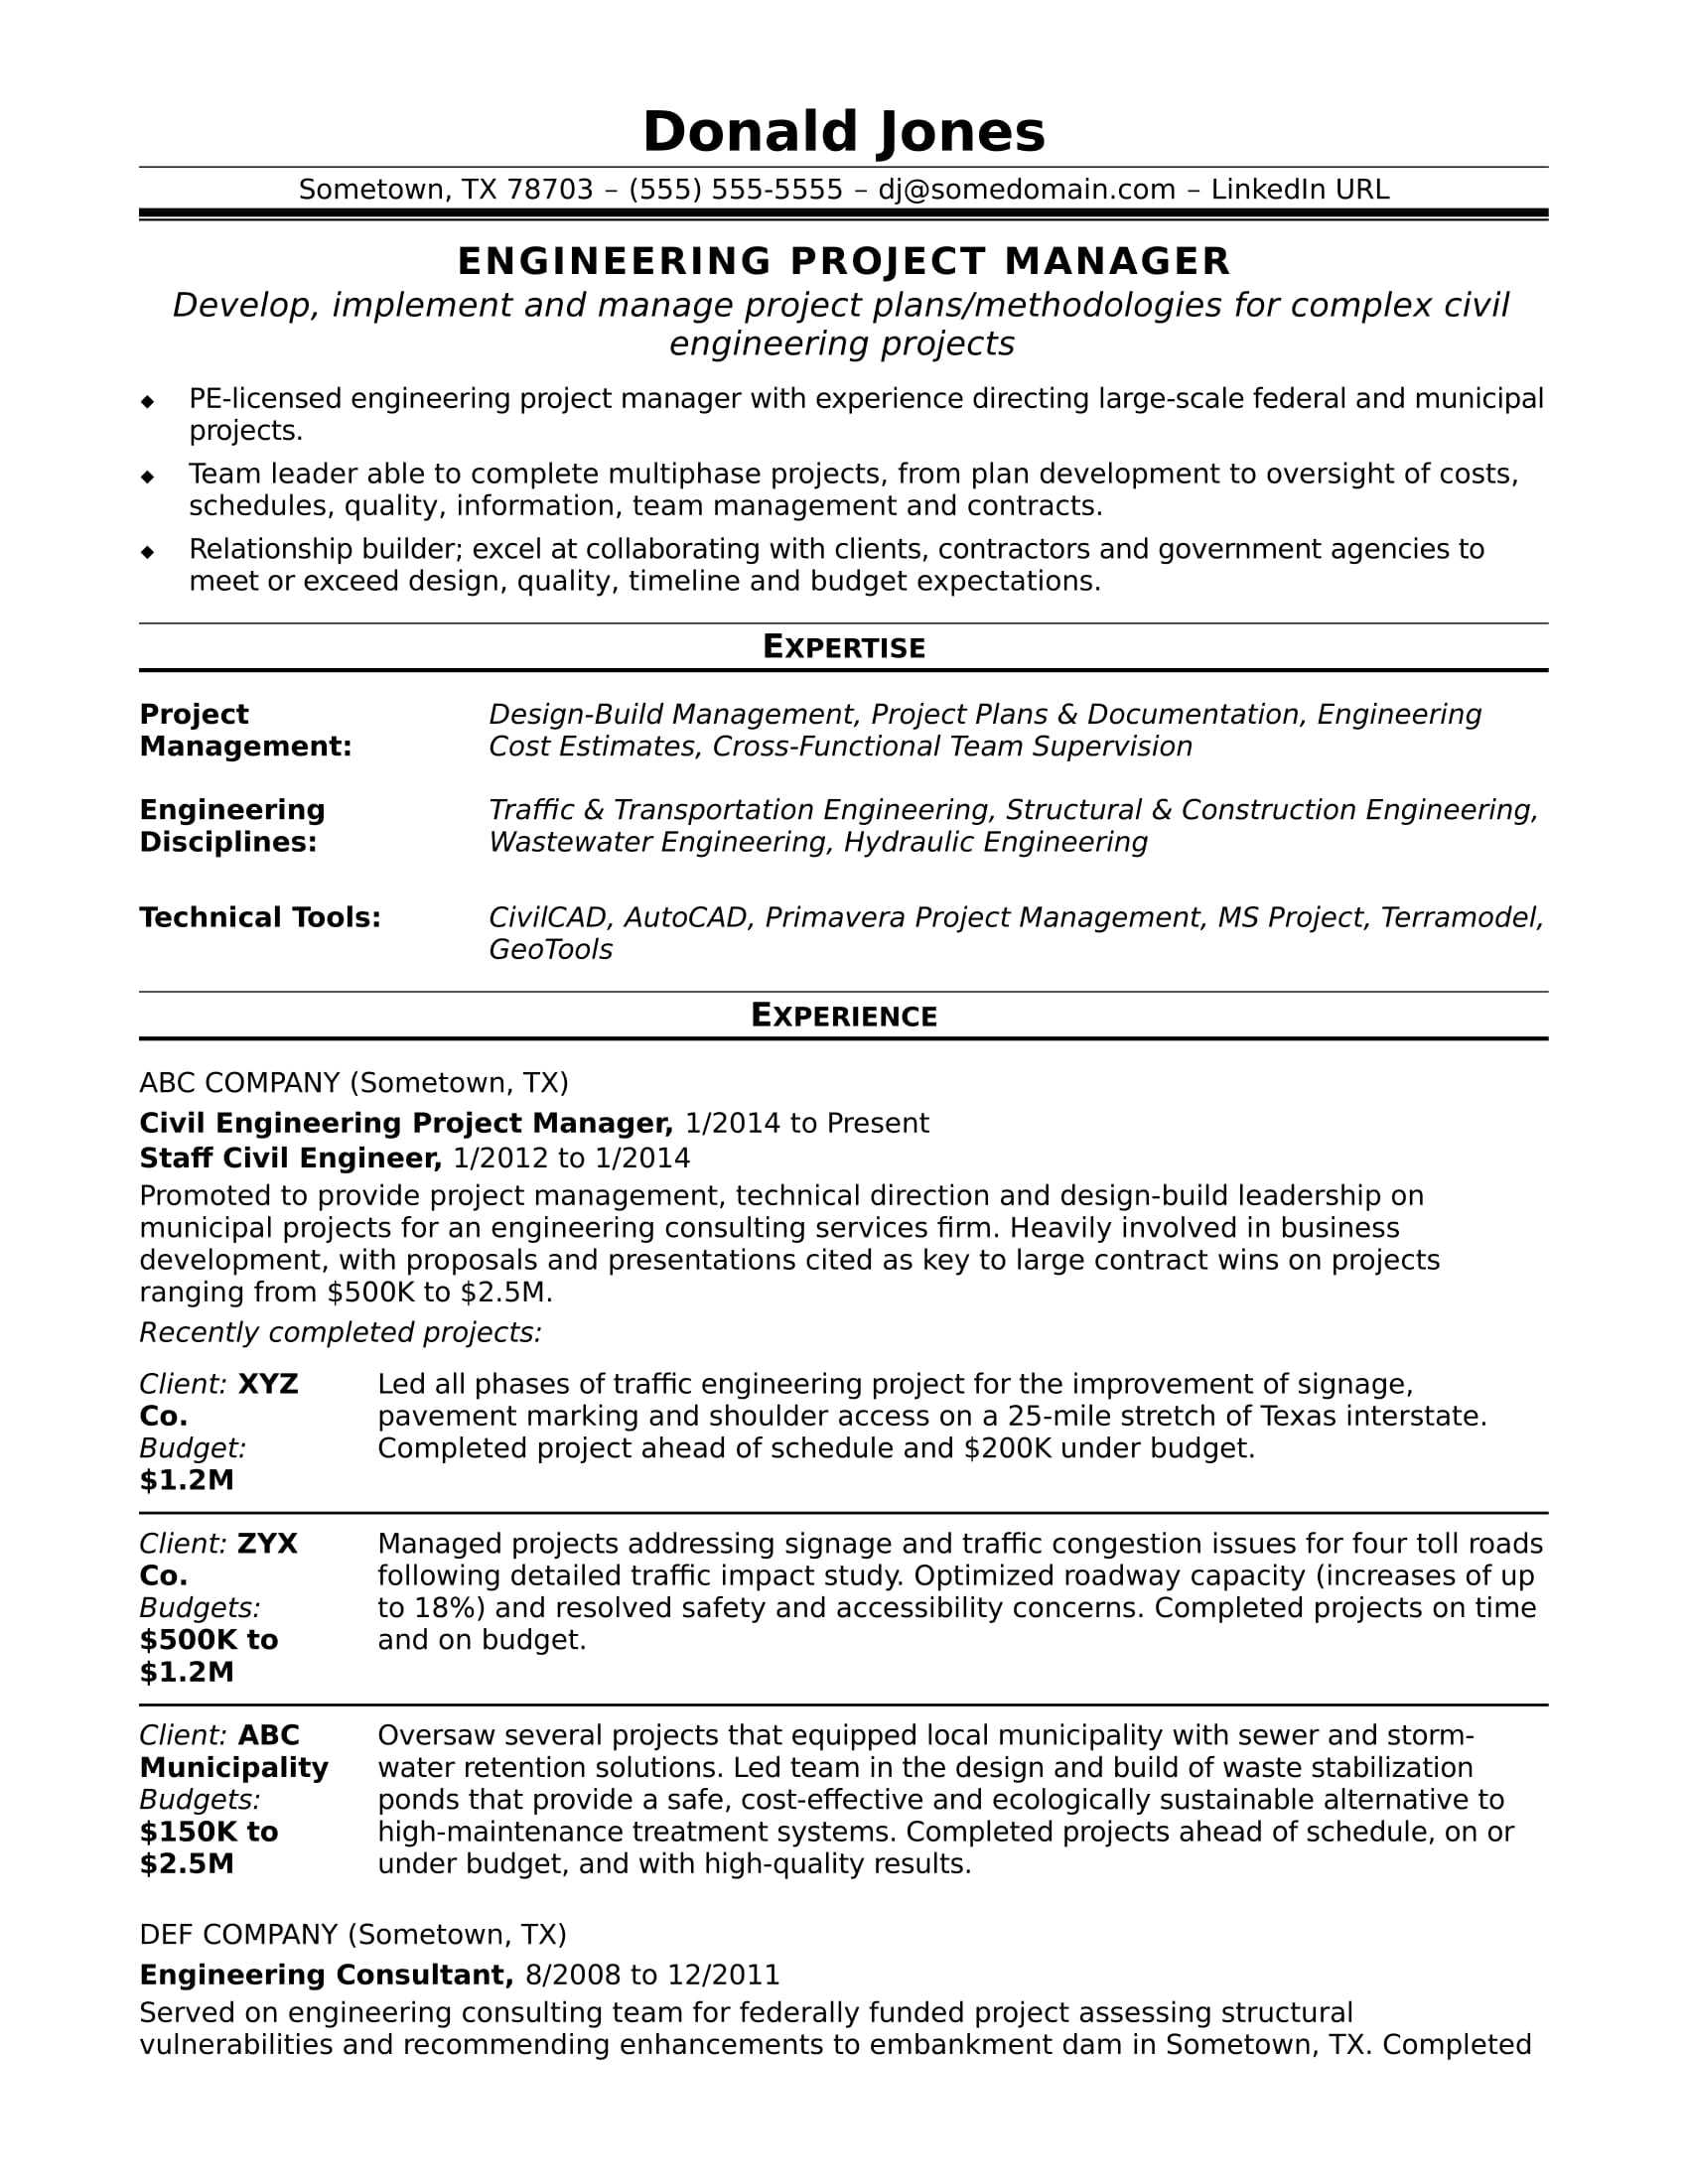 Captivating Sample Resume For A Midlevel Engineering Project Manager Intended Engineering Manager Resume